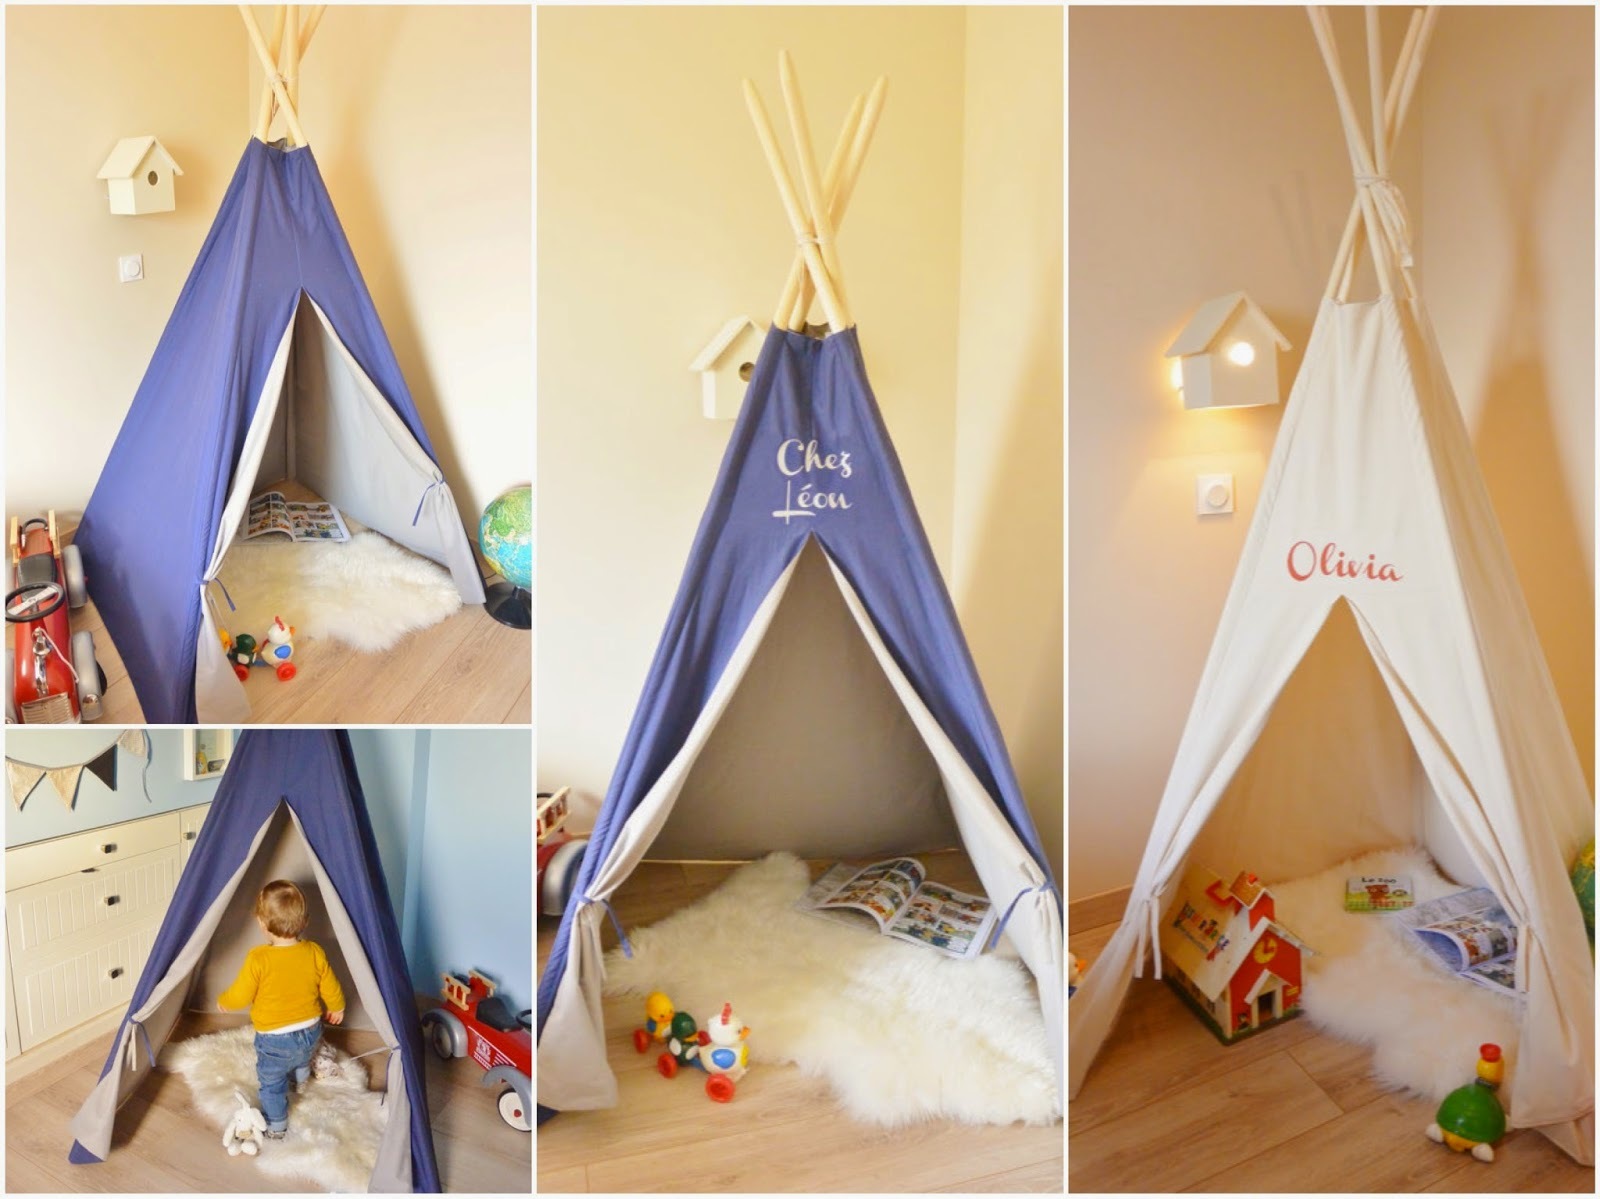 un nouveau regard d co enfant une tente tipi dans la chambre. Black Bedroom Furniture Sets. Home Design Ideas